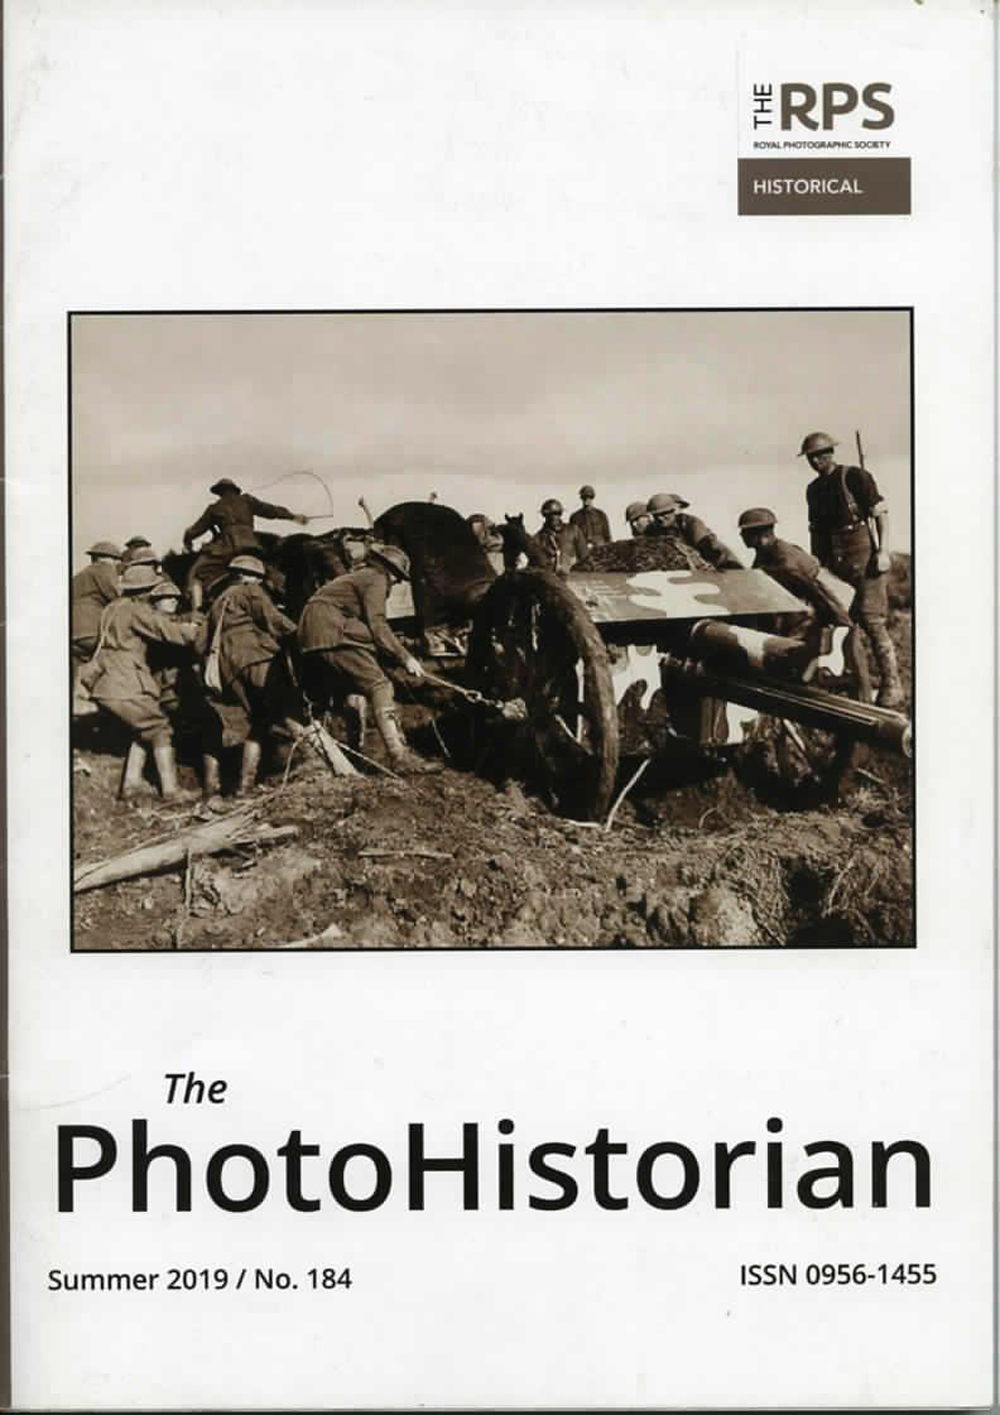 Front cover of the PhotoHistorian, Summer 2019